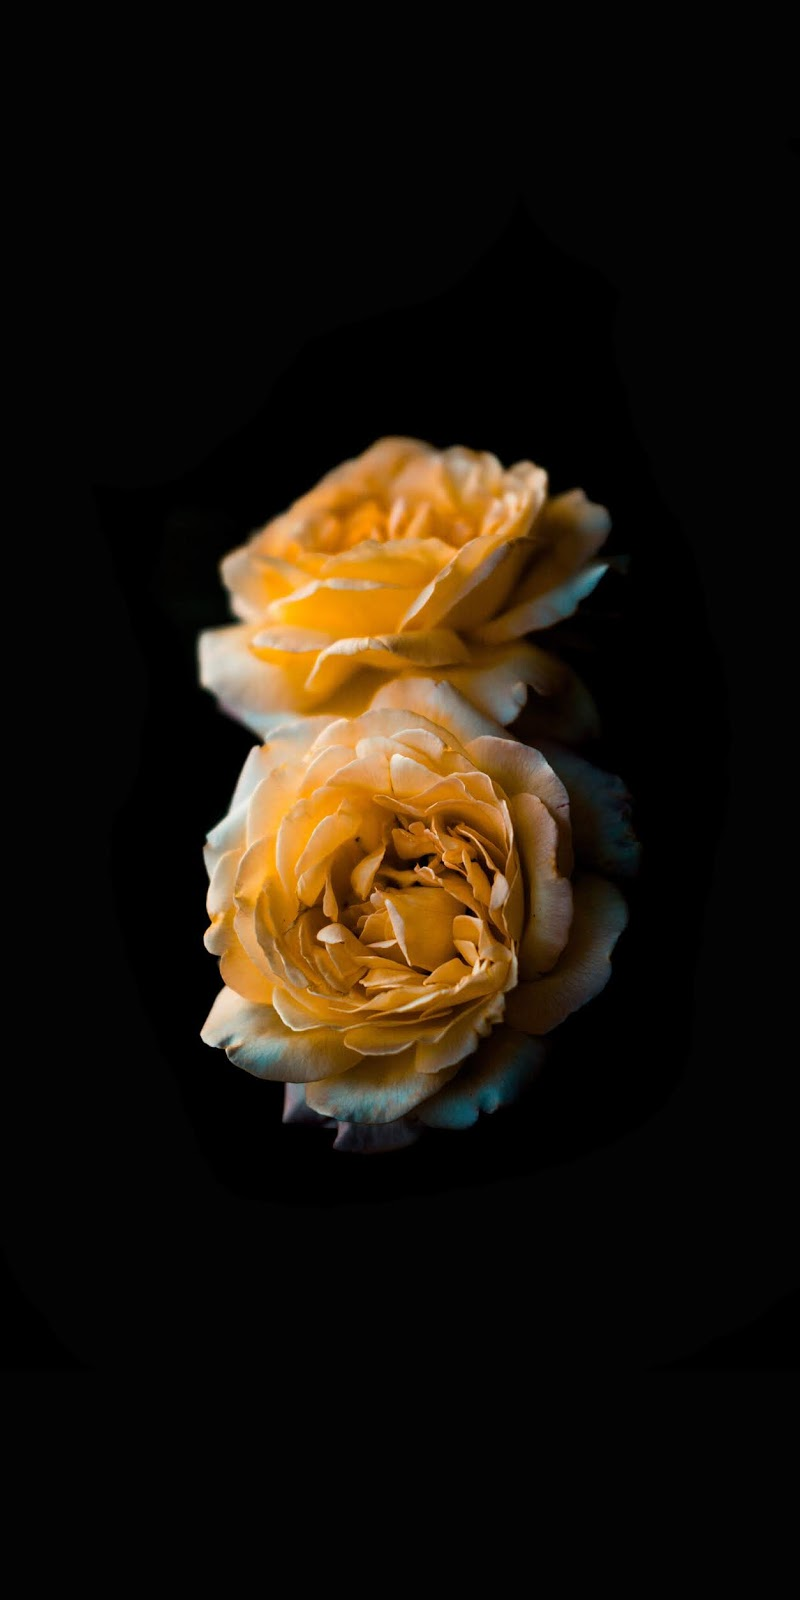 Rose AMOLED